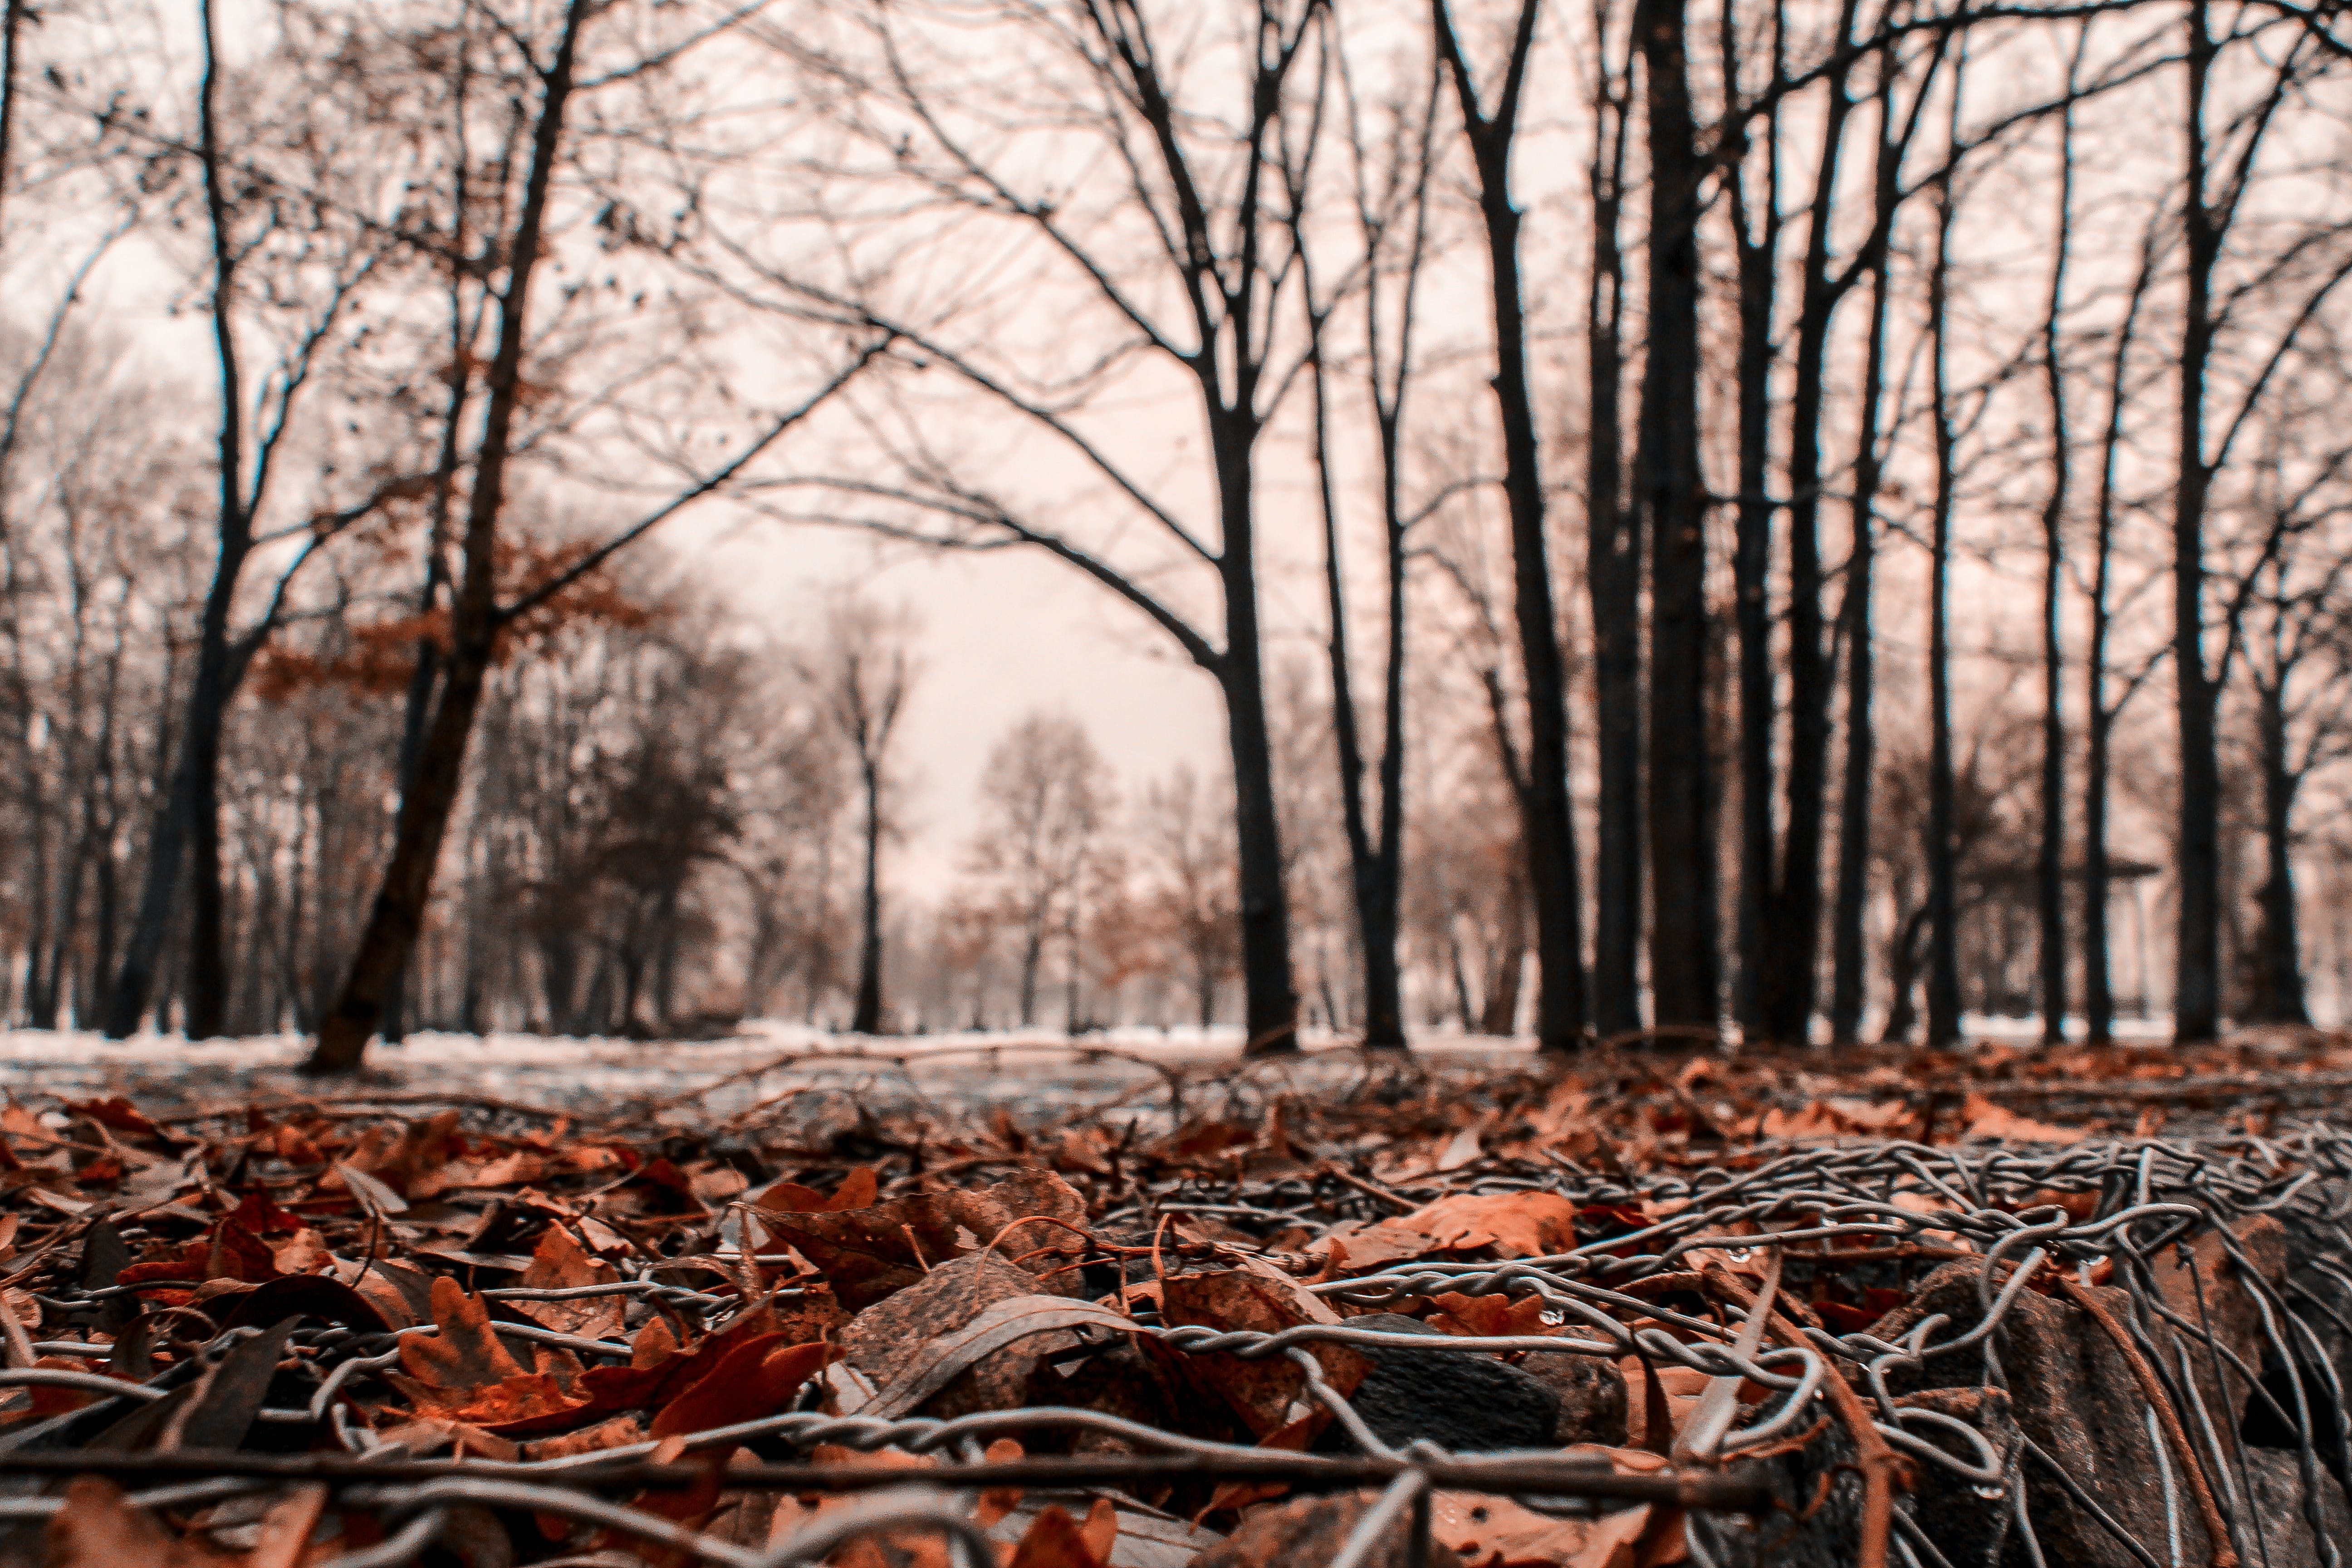 Selective Focus Photo of Withered Leaves on Ground